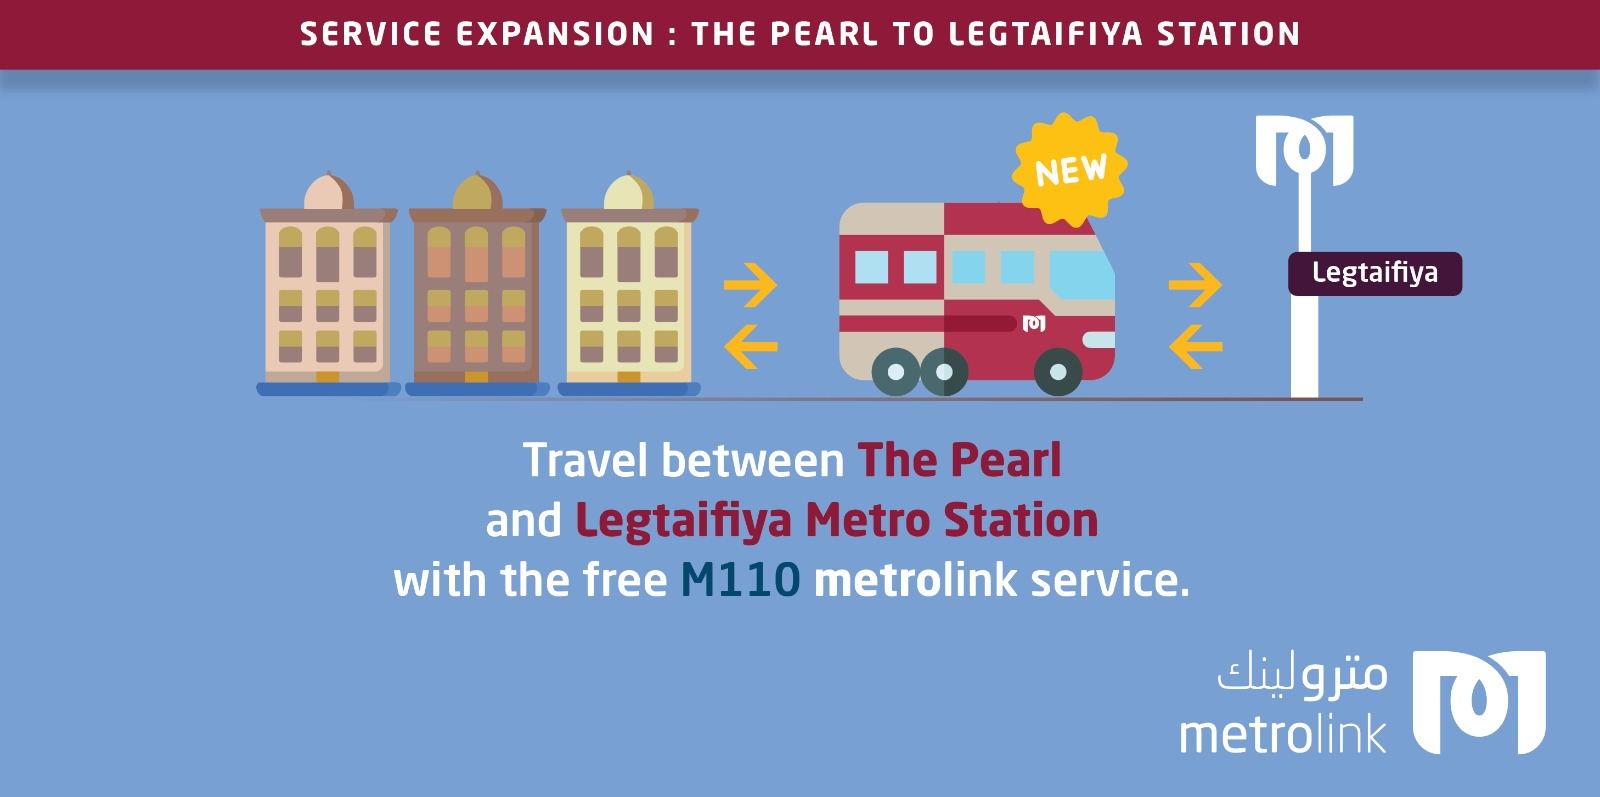 Doha Metro | Free M110 metrolink to and from the Pearl Qatar and Legtaifiya Station | Expansion of metroexpress pilot service